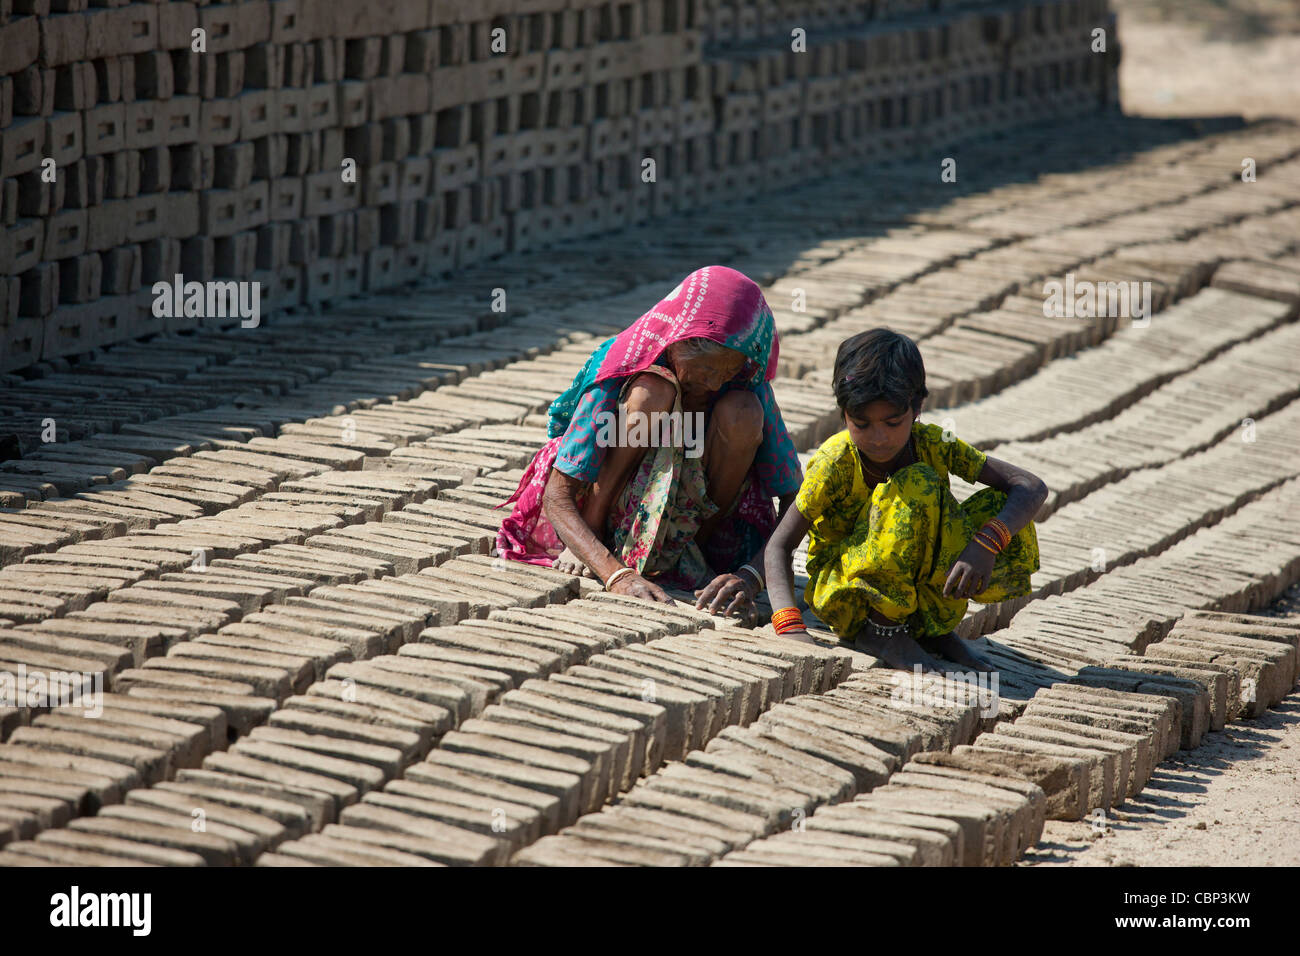 Indian woman with grandchild drying bricks made from clay at Khore Bricks Factory, Rajasthan, Northern India - Stock Image